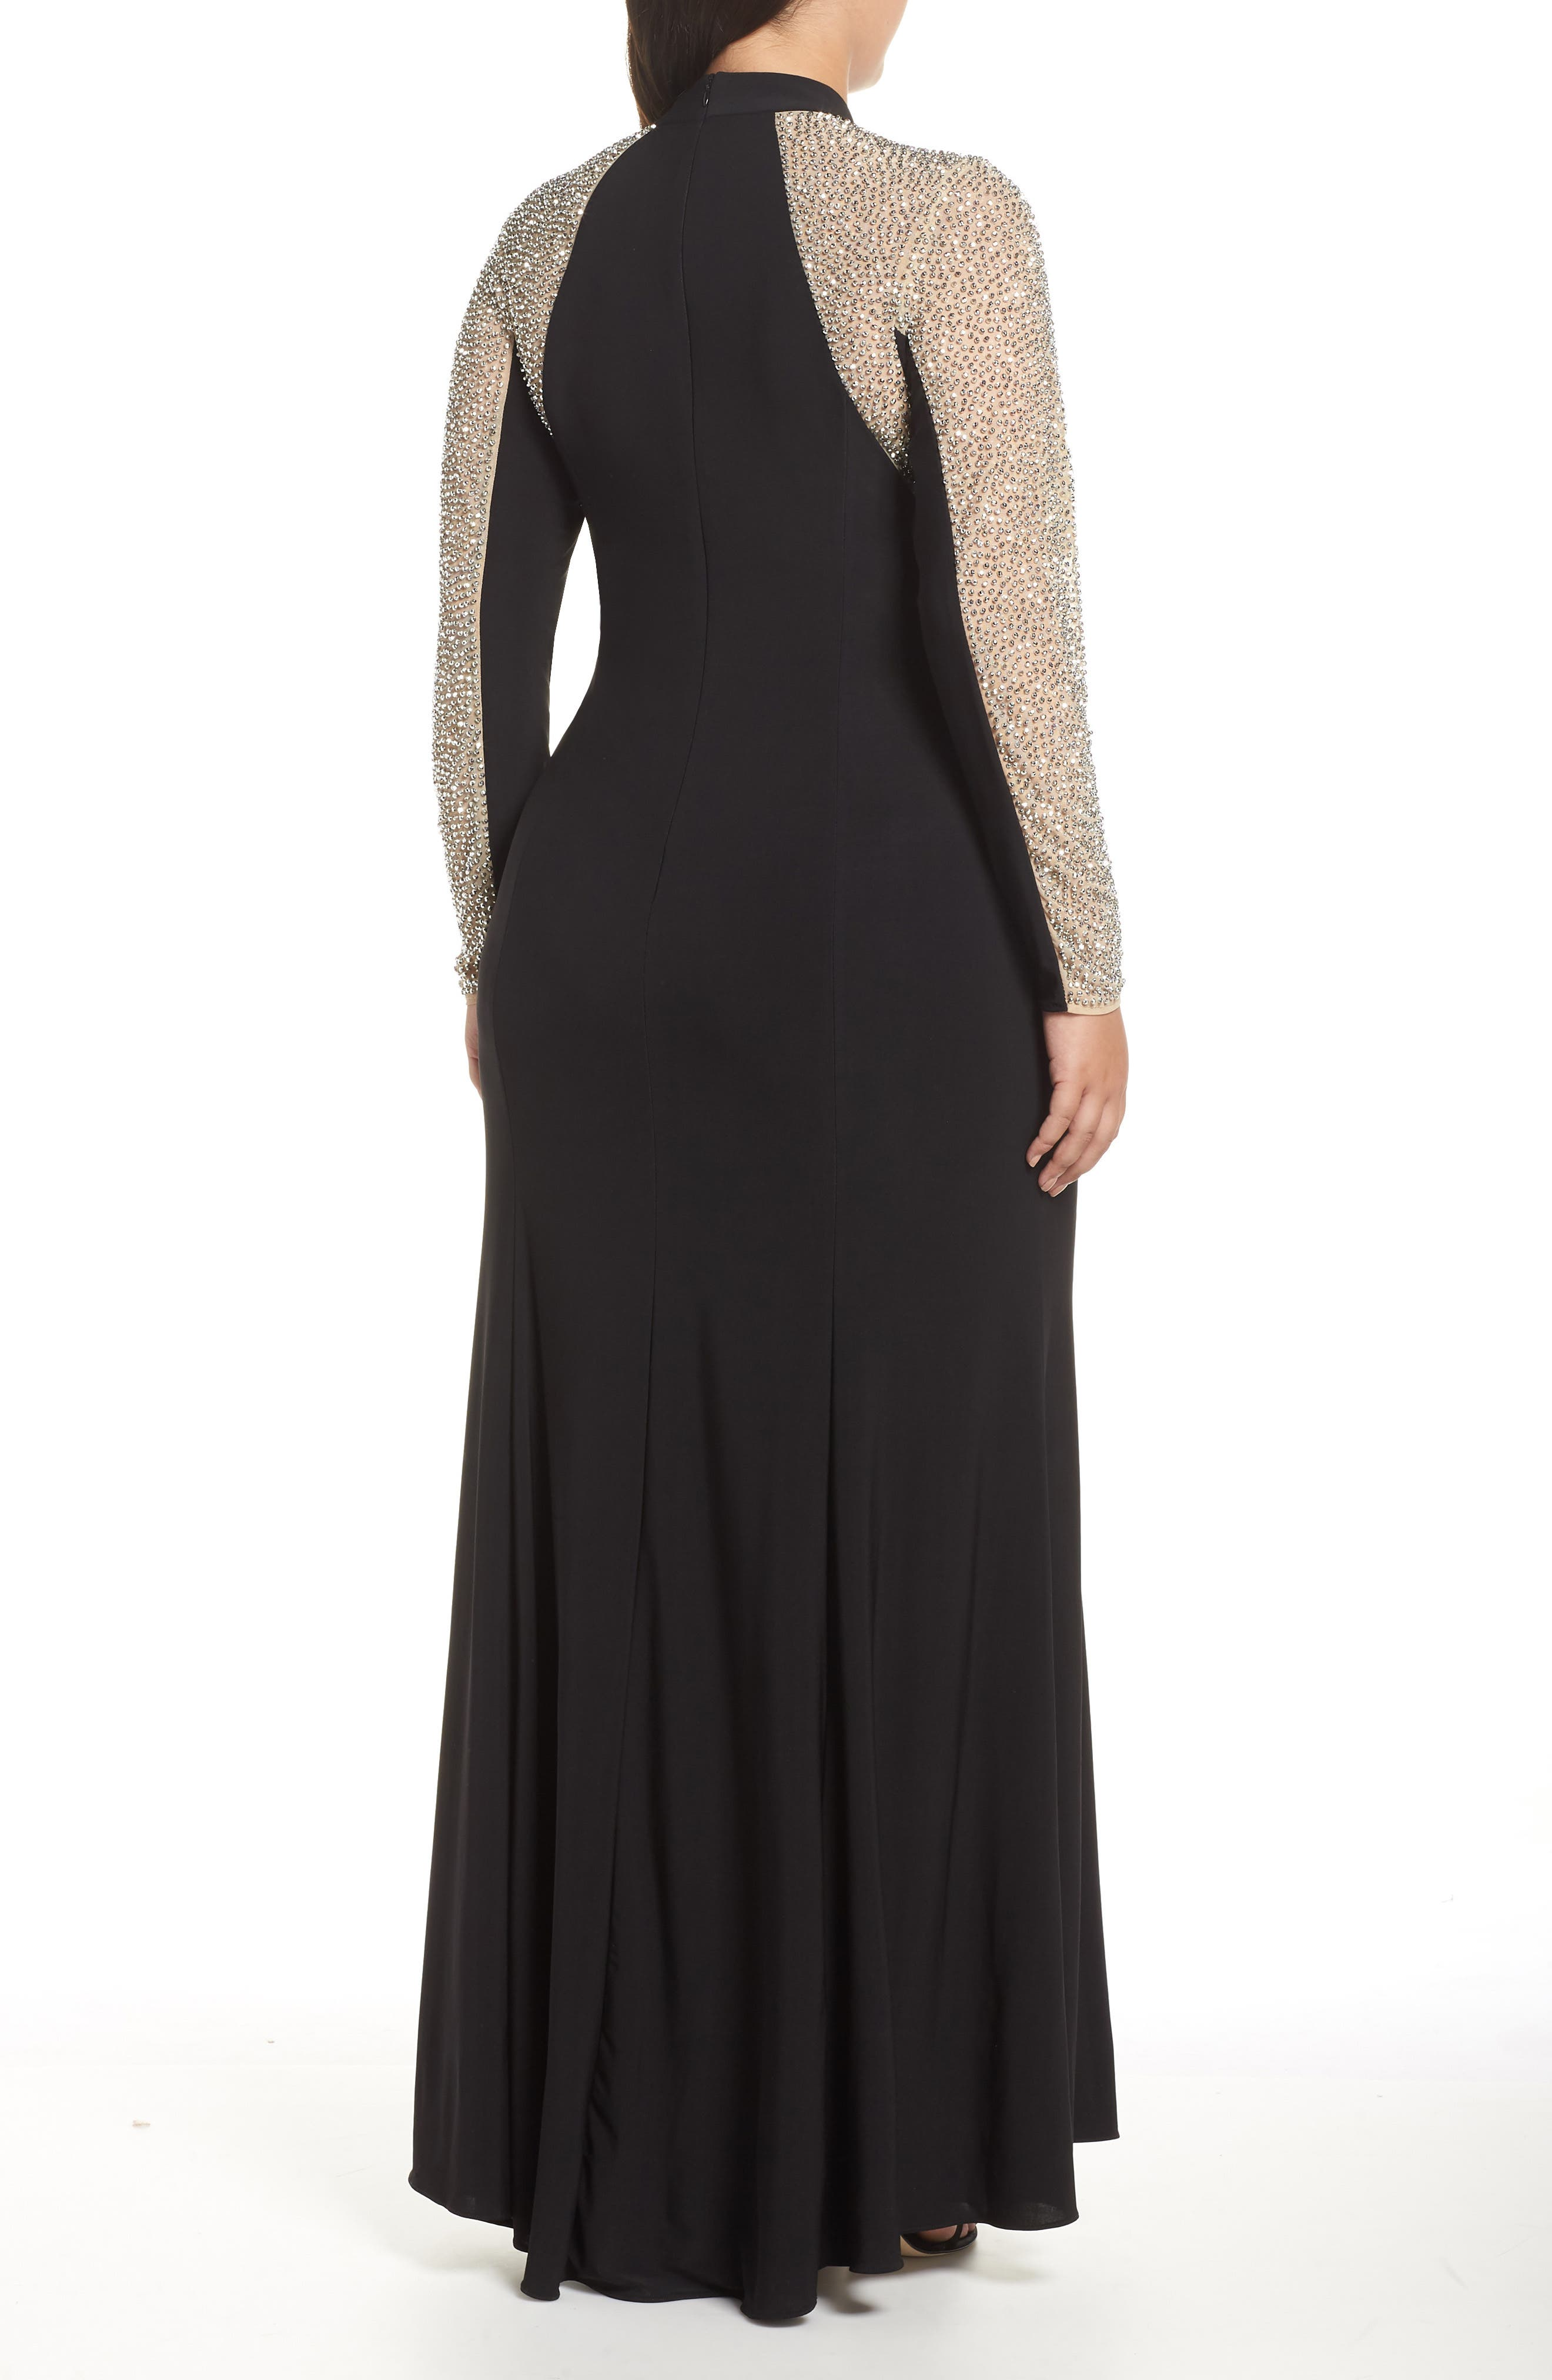 XSCAPE, Beaded A-Line Gown, Alternate thumbnail 2, color, BLACK/ NUDE/ SILVER